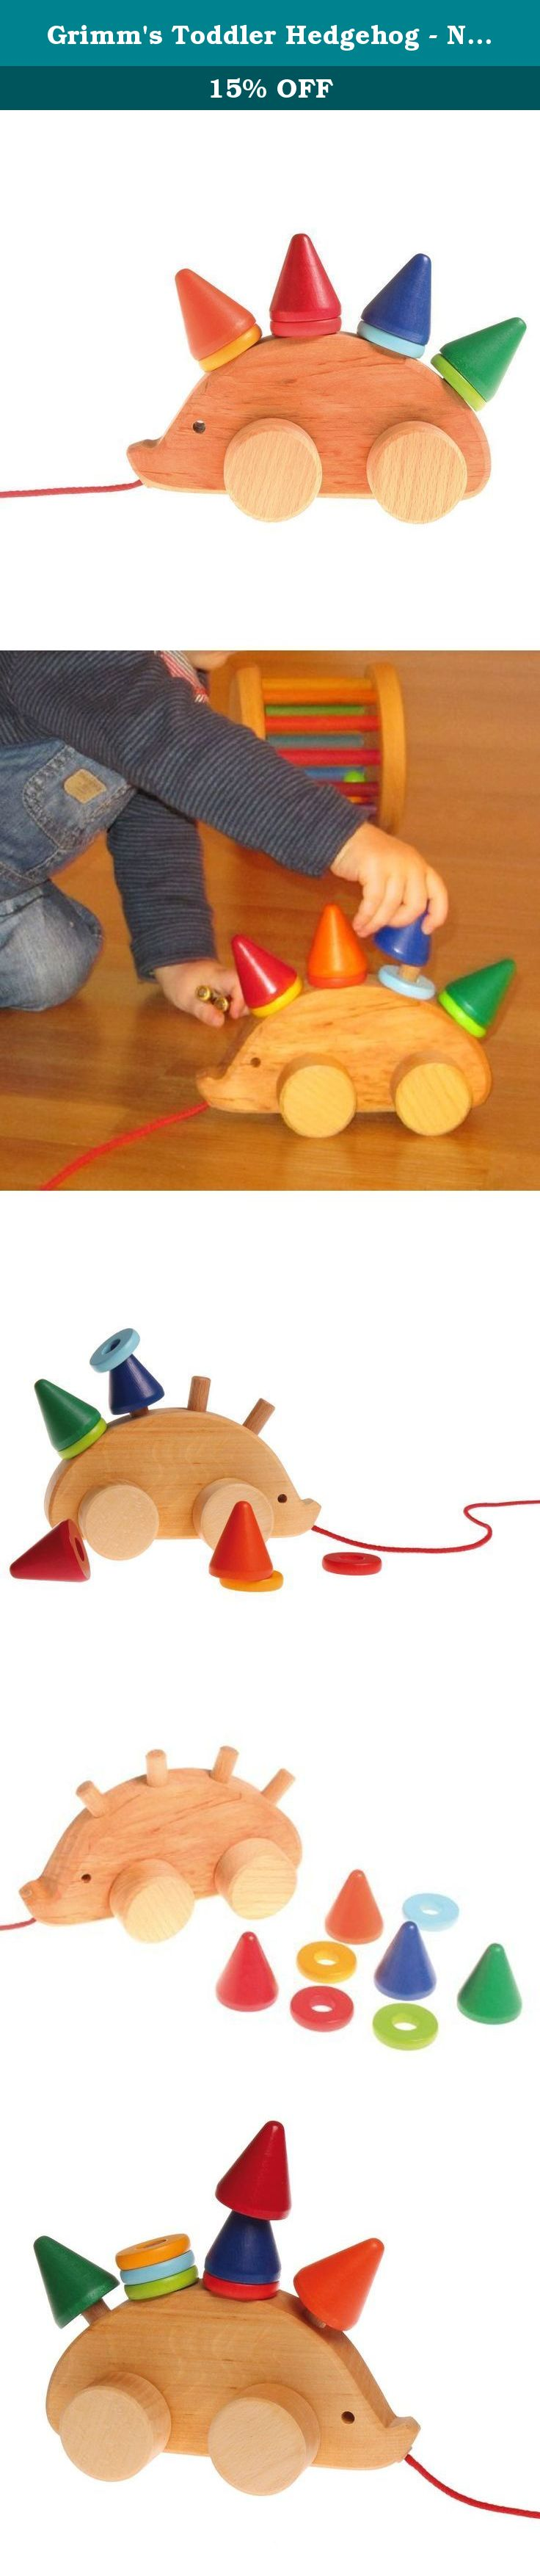 Grimm S Toddler Hedgehog Natural Wood Pull Toy With 8